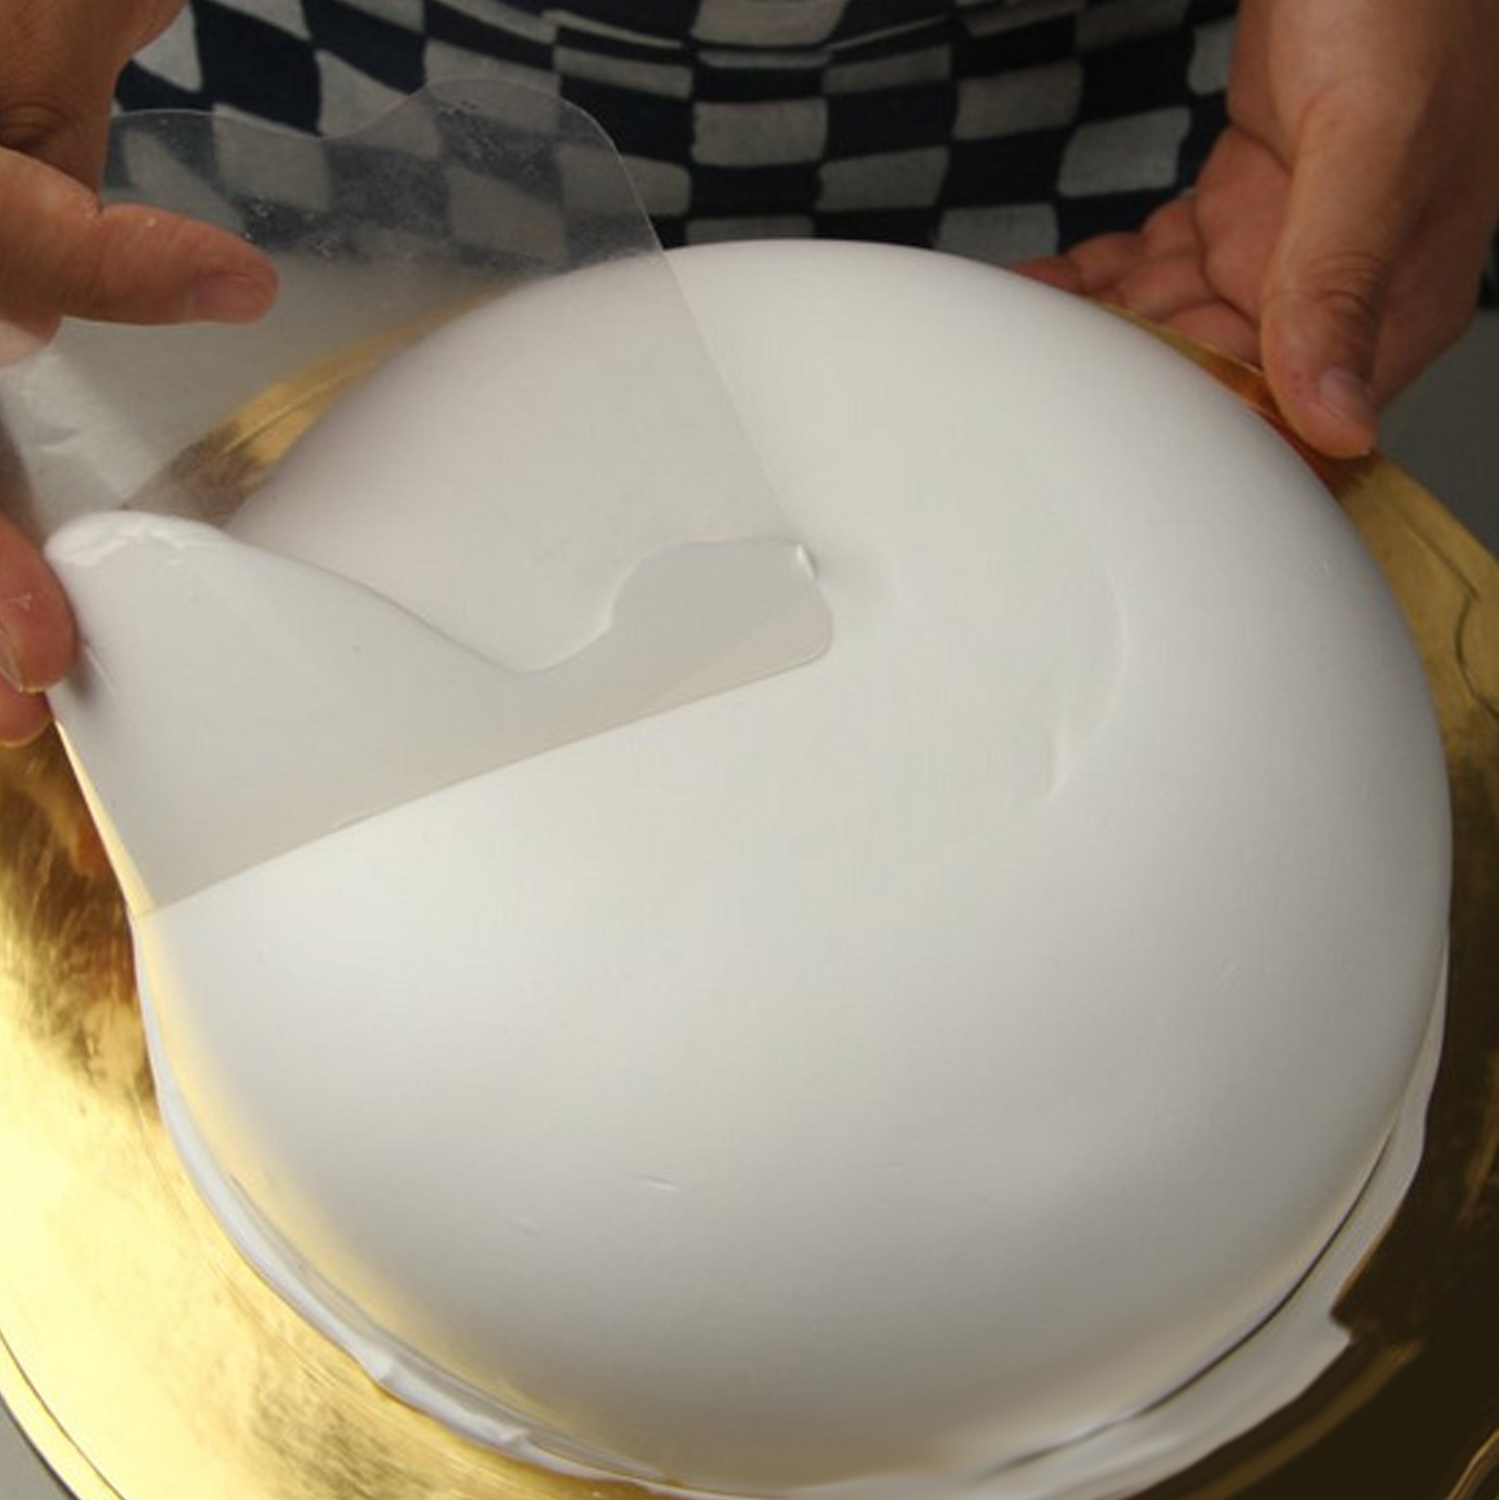 Behogar 5PCS Flexible Transparent Plastic <font><b>Cake</b></font> <font><b>Scraper</b></font> <font><b>Smoother</b></font> for Bread Pastry Chef Bakery <font><b>Cake</b></font> Decorating Supplies image